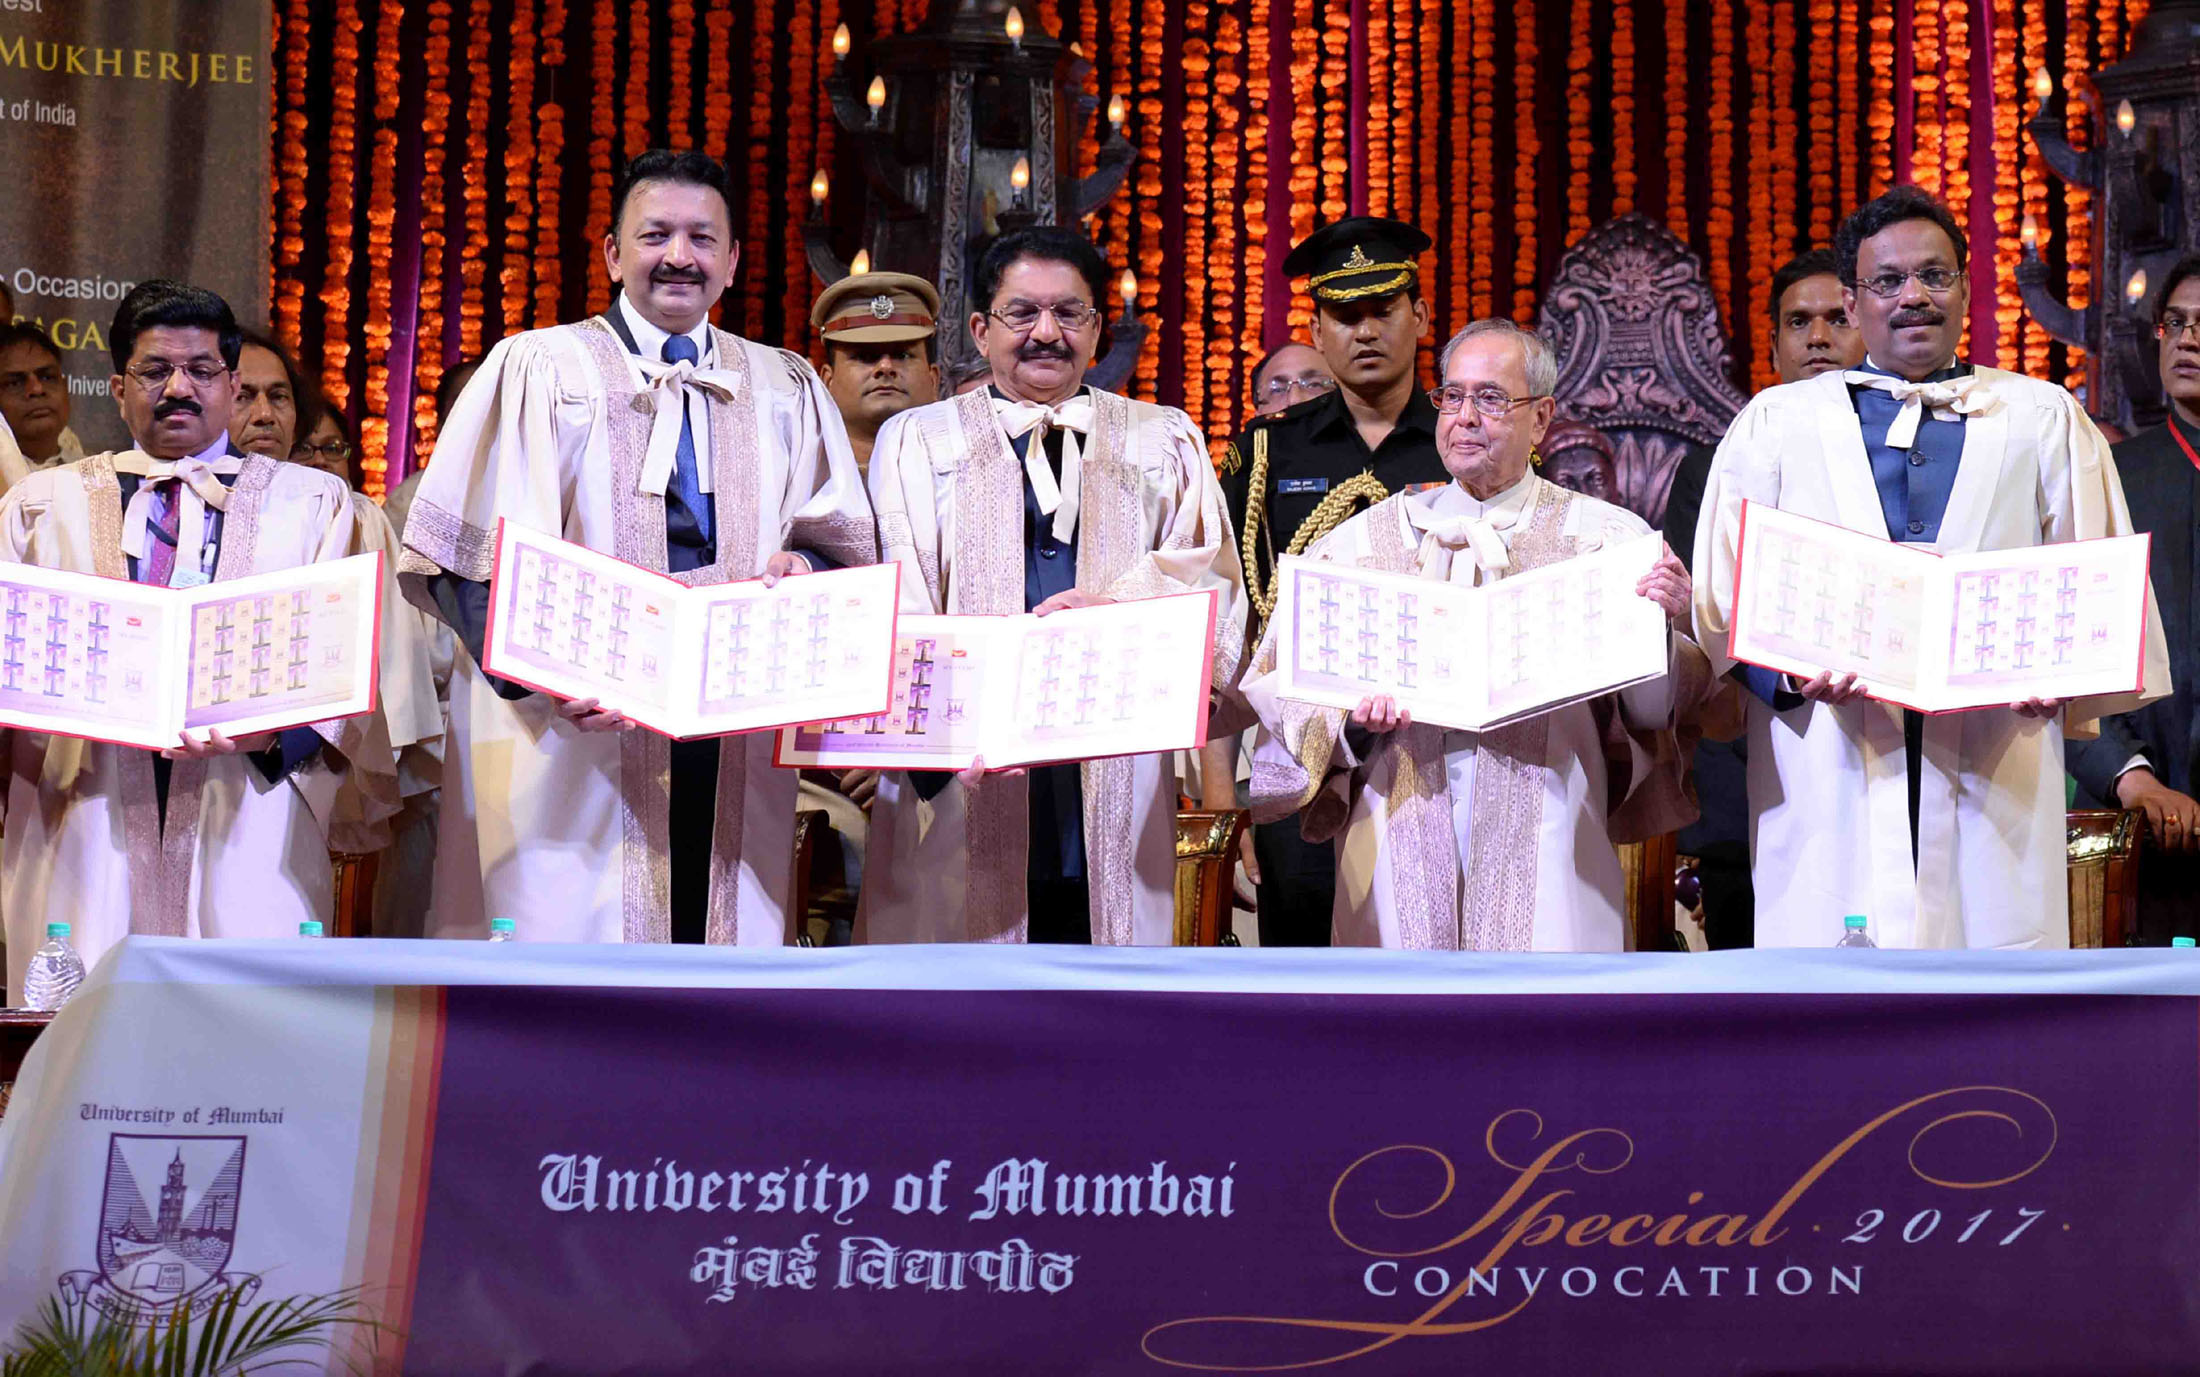 The President, Shri Pranab Mukherjee releasing the postal stamp at the special convocation of University of Mumbai, in Mumbai on March 17, 2017. The Governor of Maharashtra, Shri C. Vidyasagar Rao and other dignitaries are also seen.